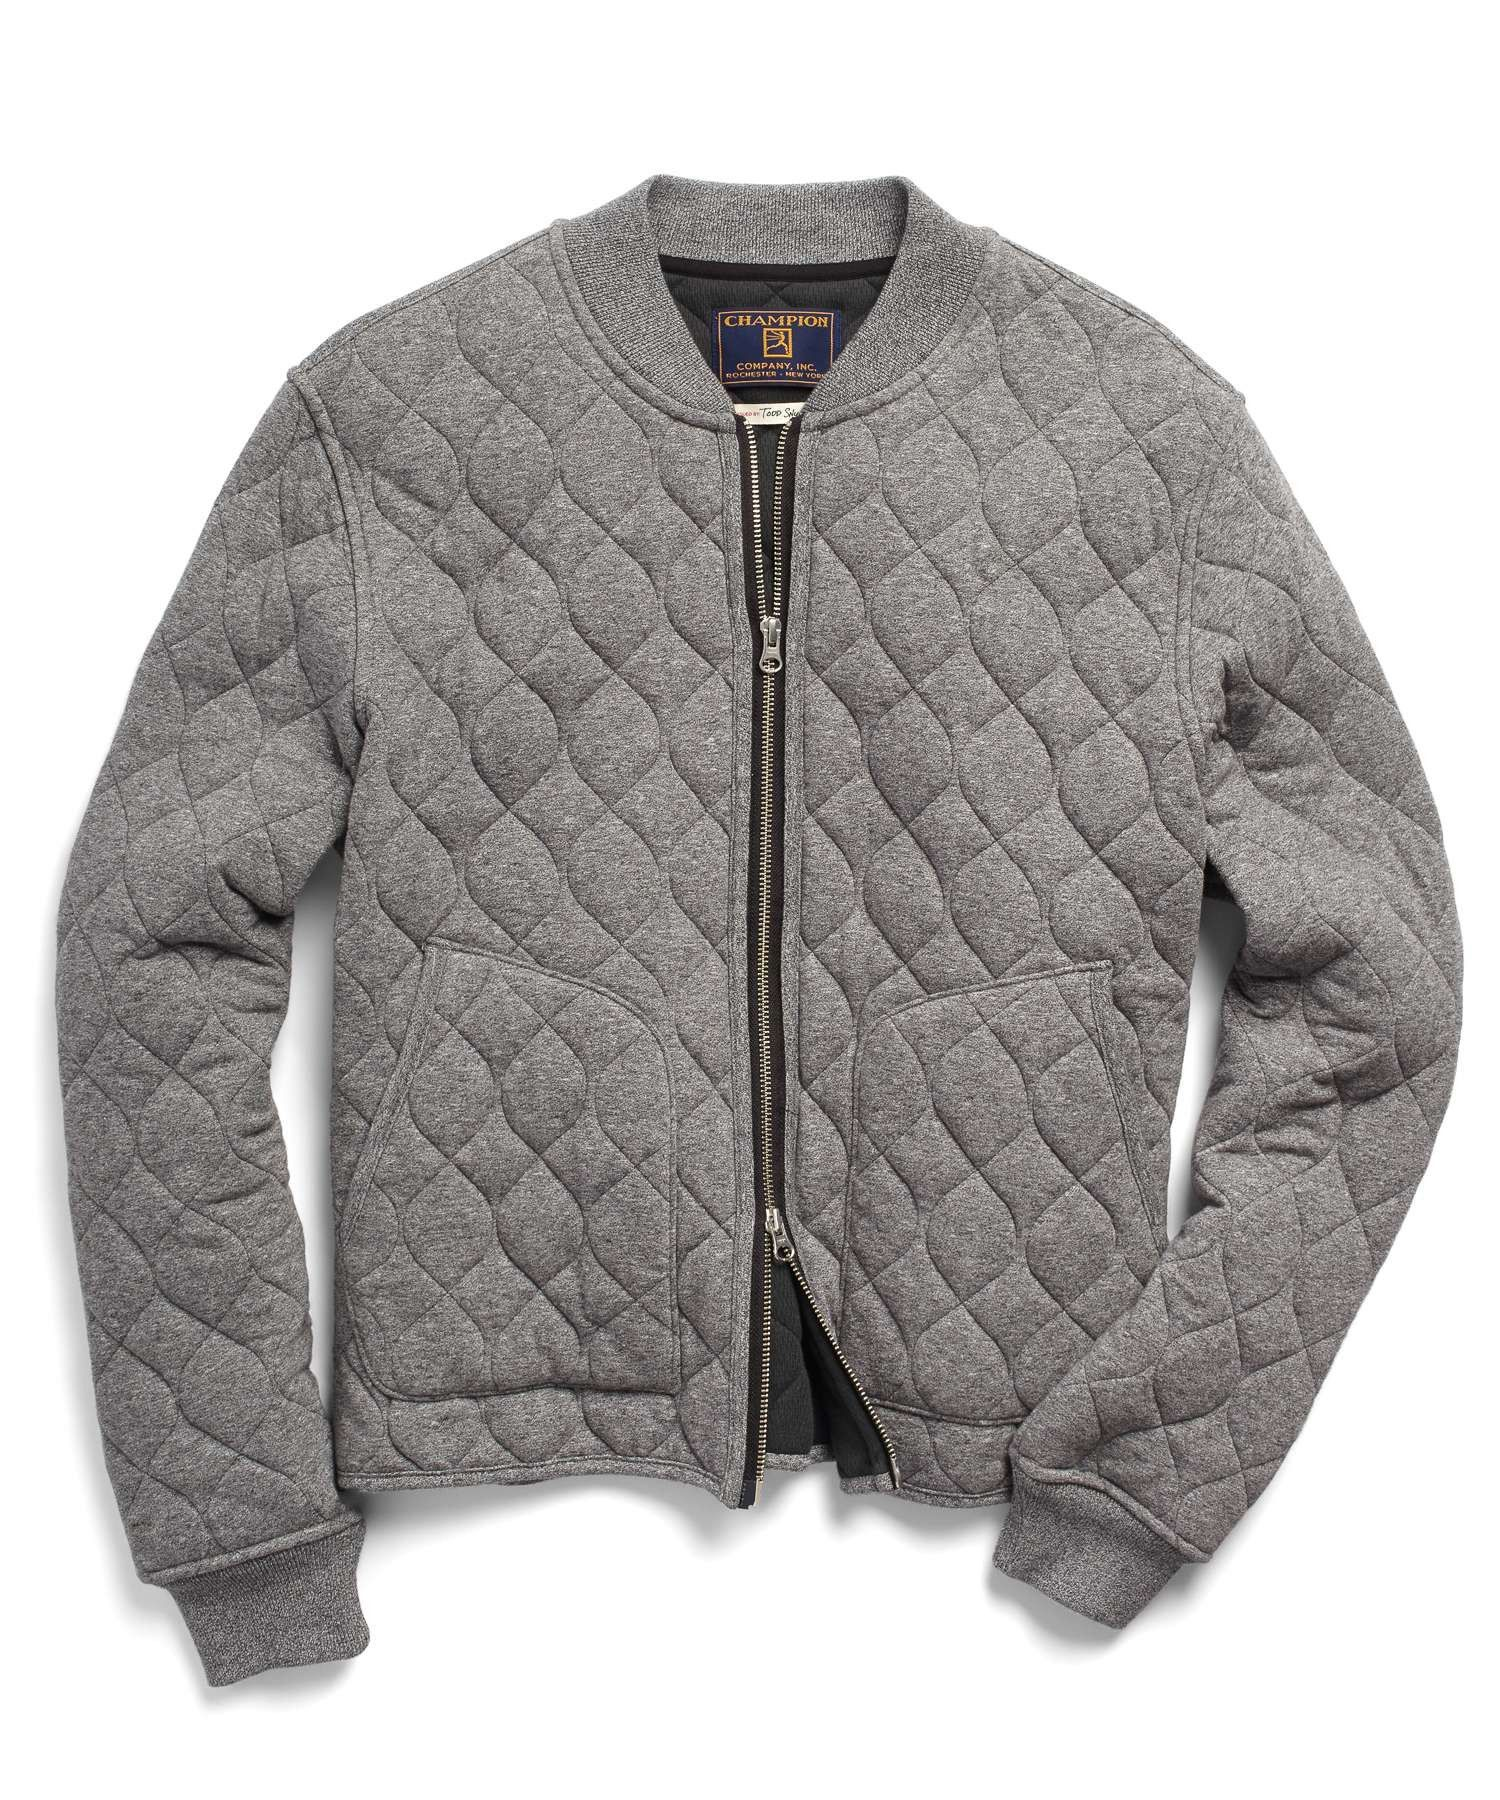 Quilted Bomber Jacket In Heather Grey Quilted Bomber Jacket Mens Sweatshirts Hoodie Quilted Bomber